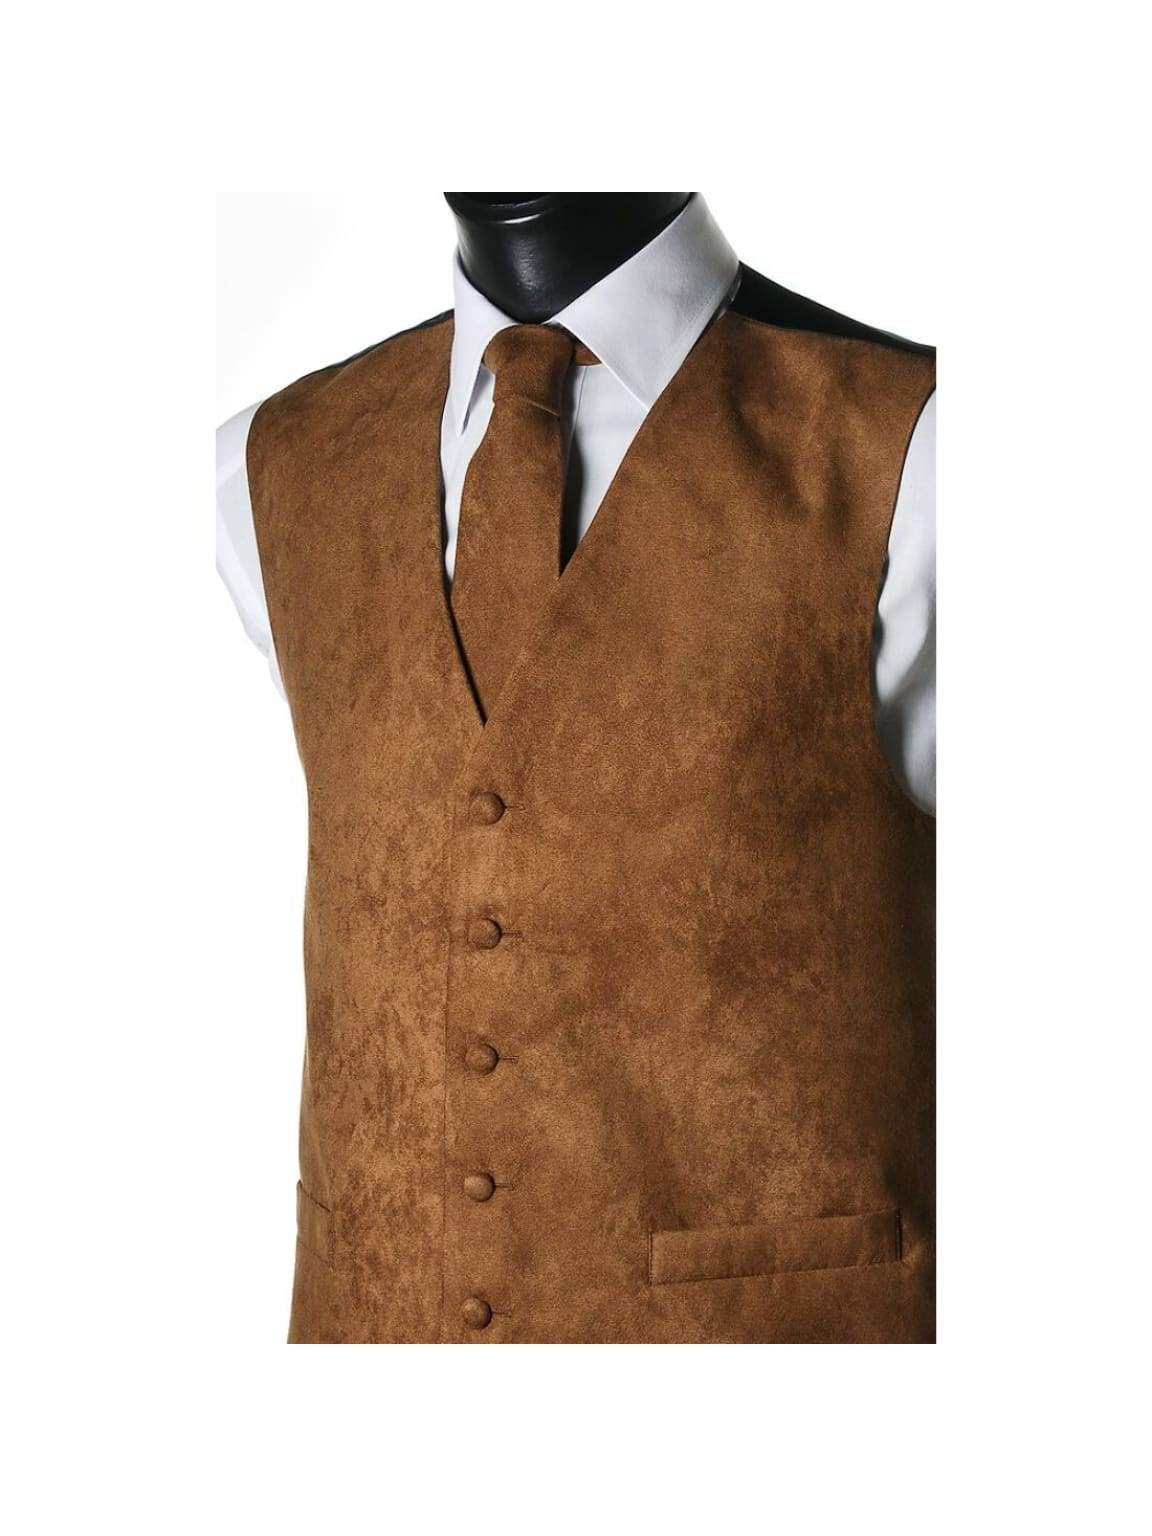 L A Smith Beige Suede Look Waistcoat - Suit & Tailoring